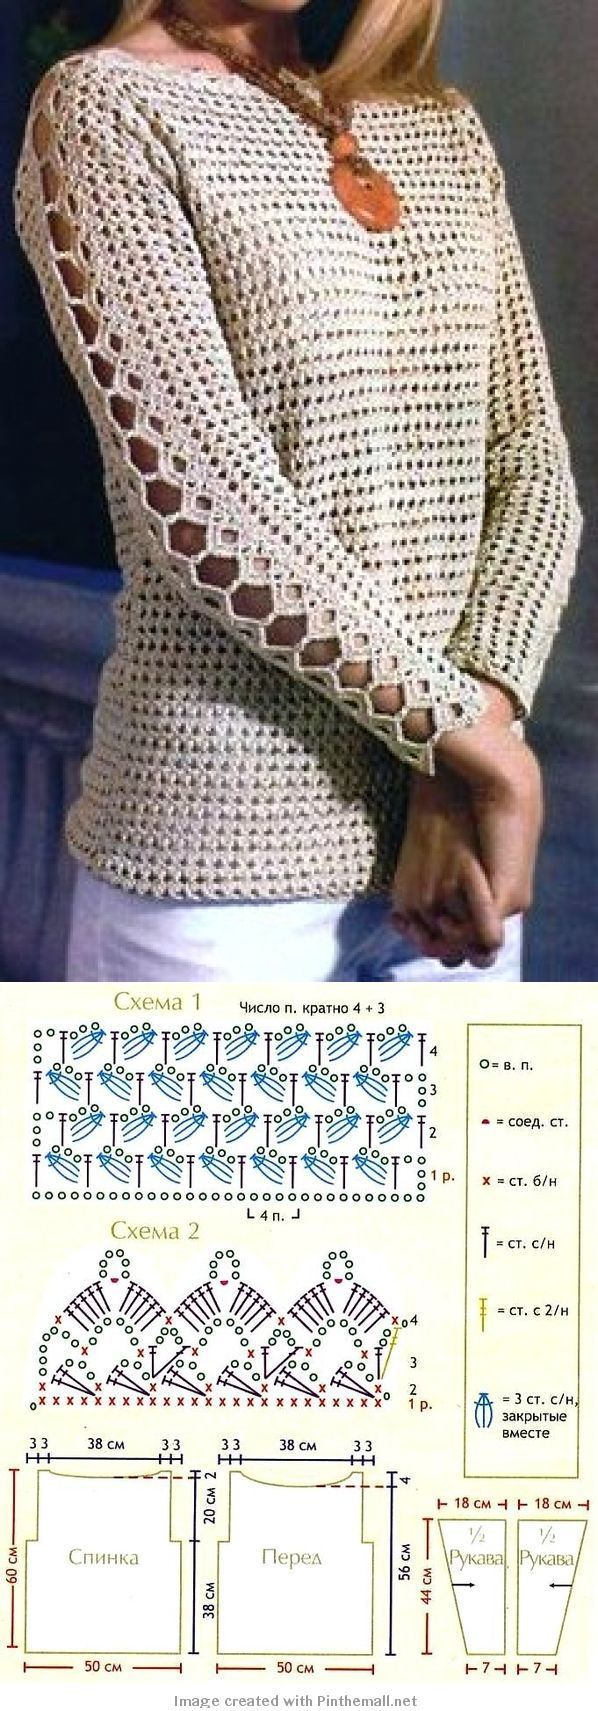 Crochet Top - Free Crochet Diagram - (stylowi):